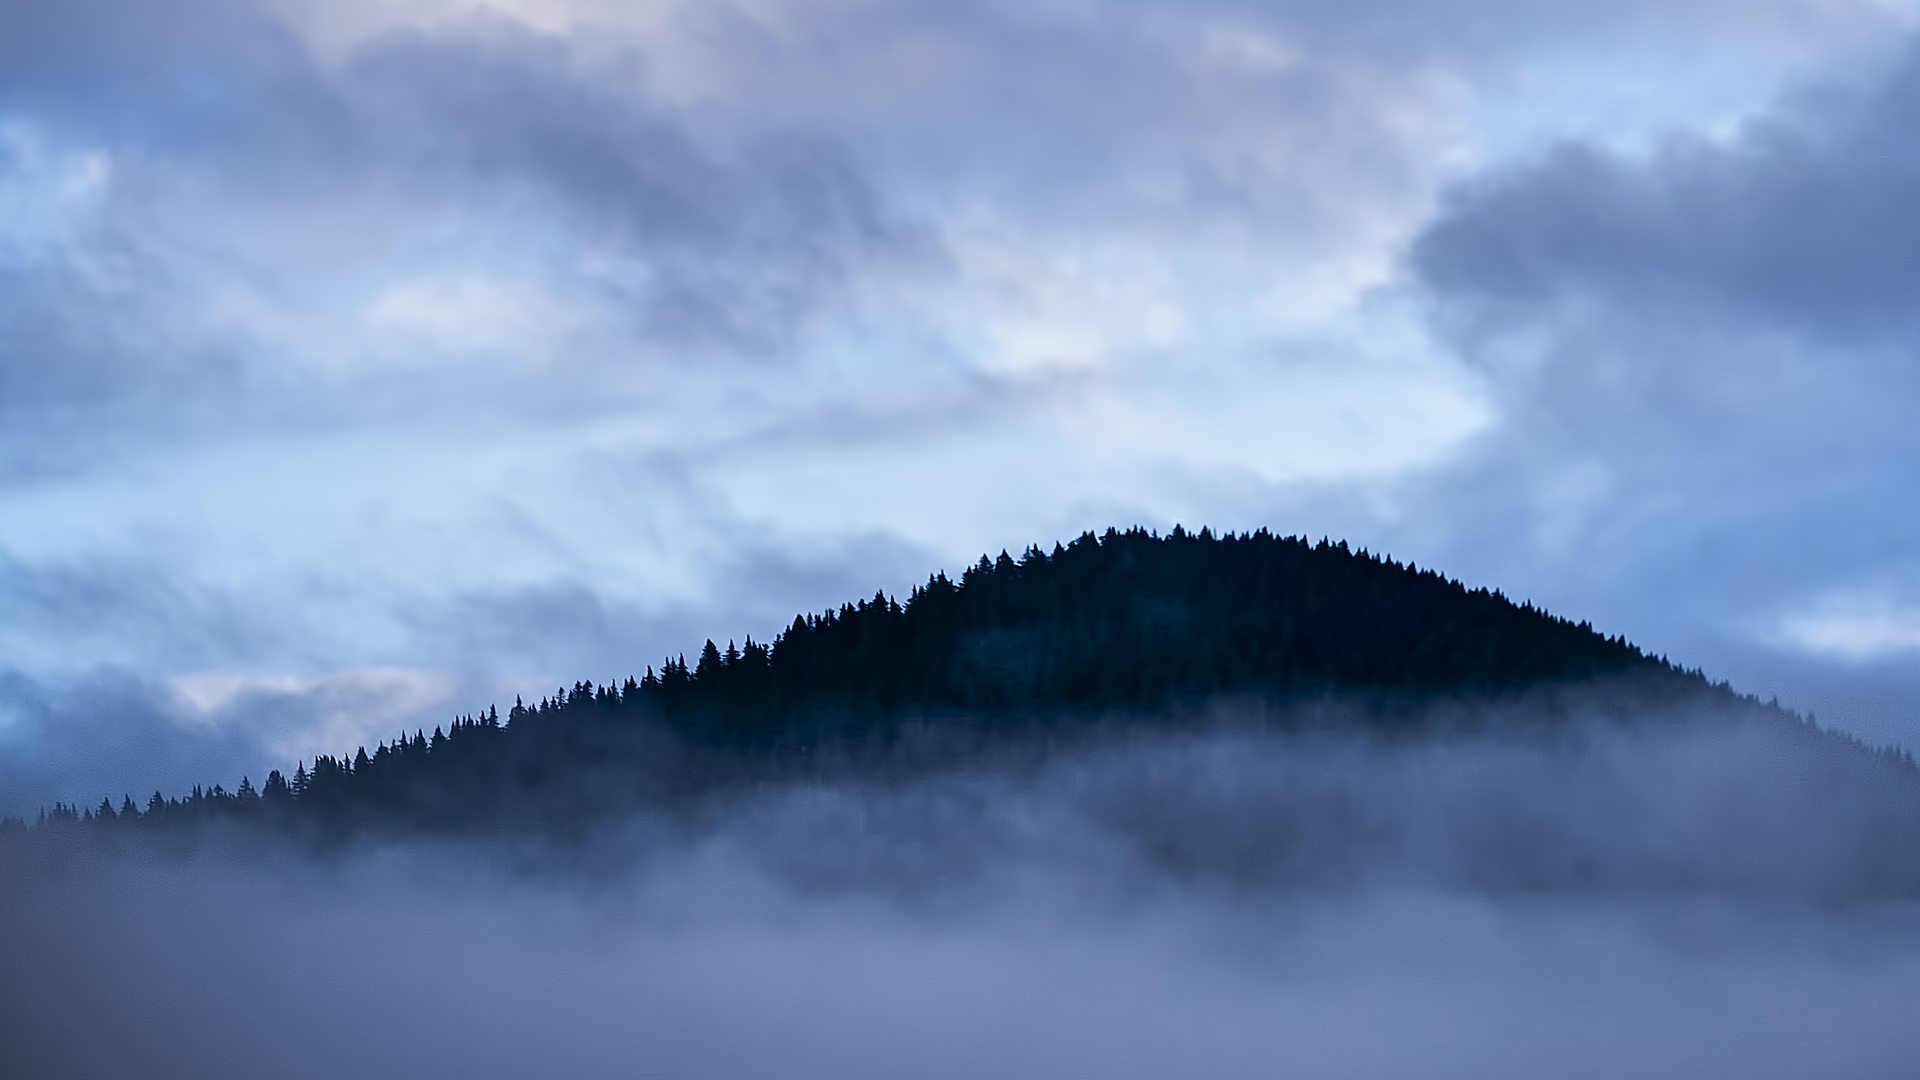 Mountains in fog near Tofino, Vancouver Island, Canada